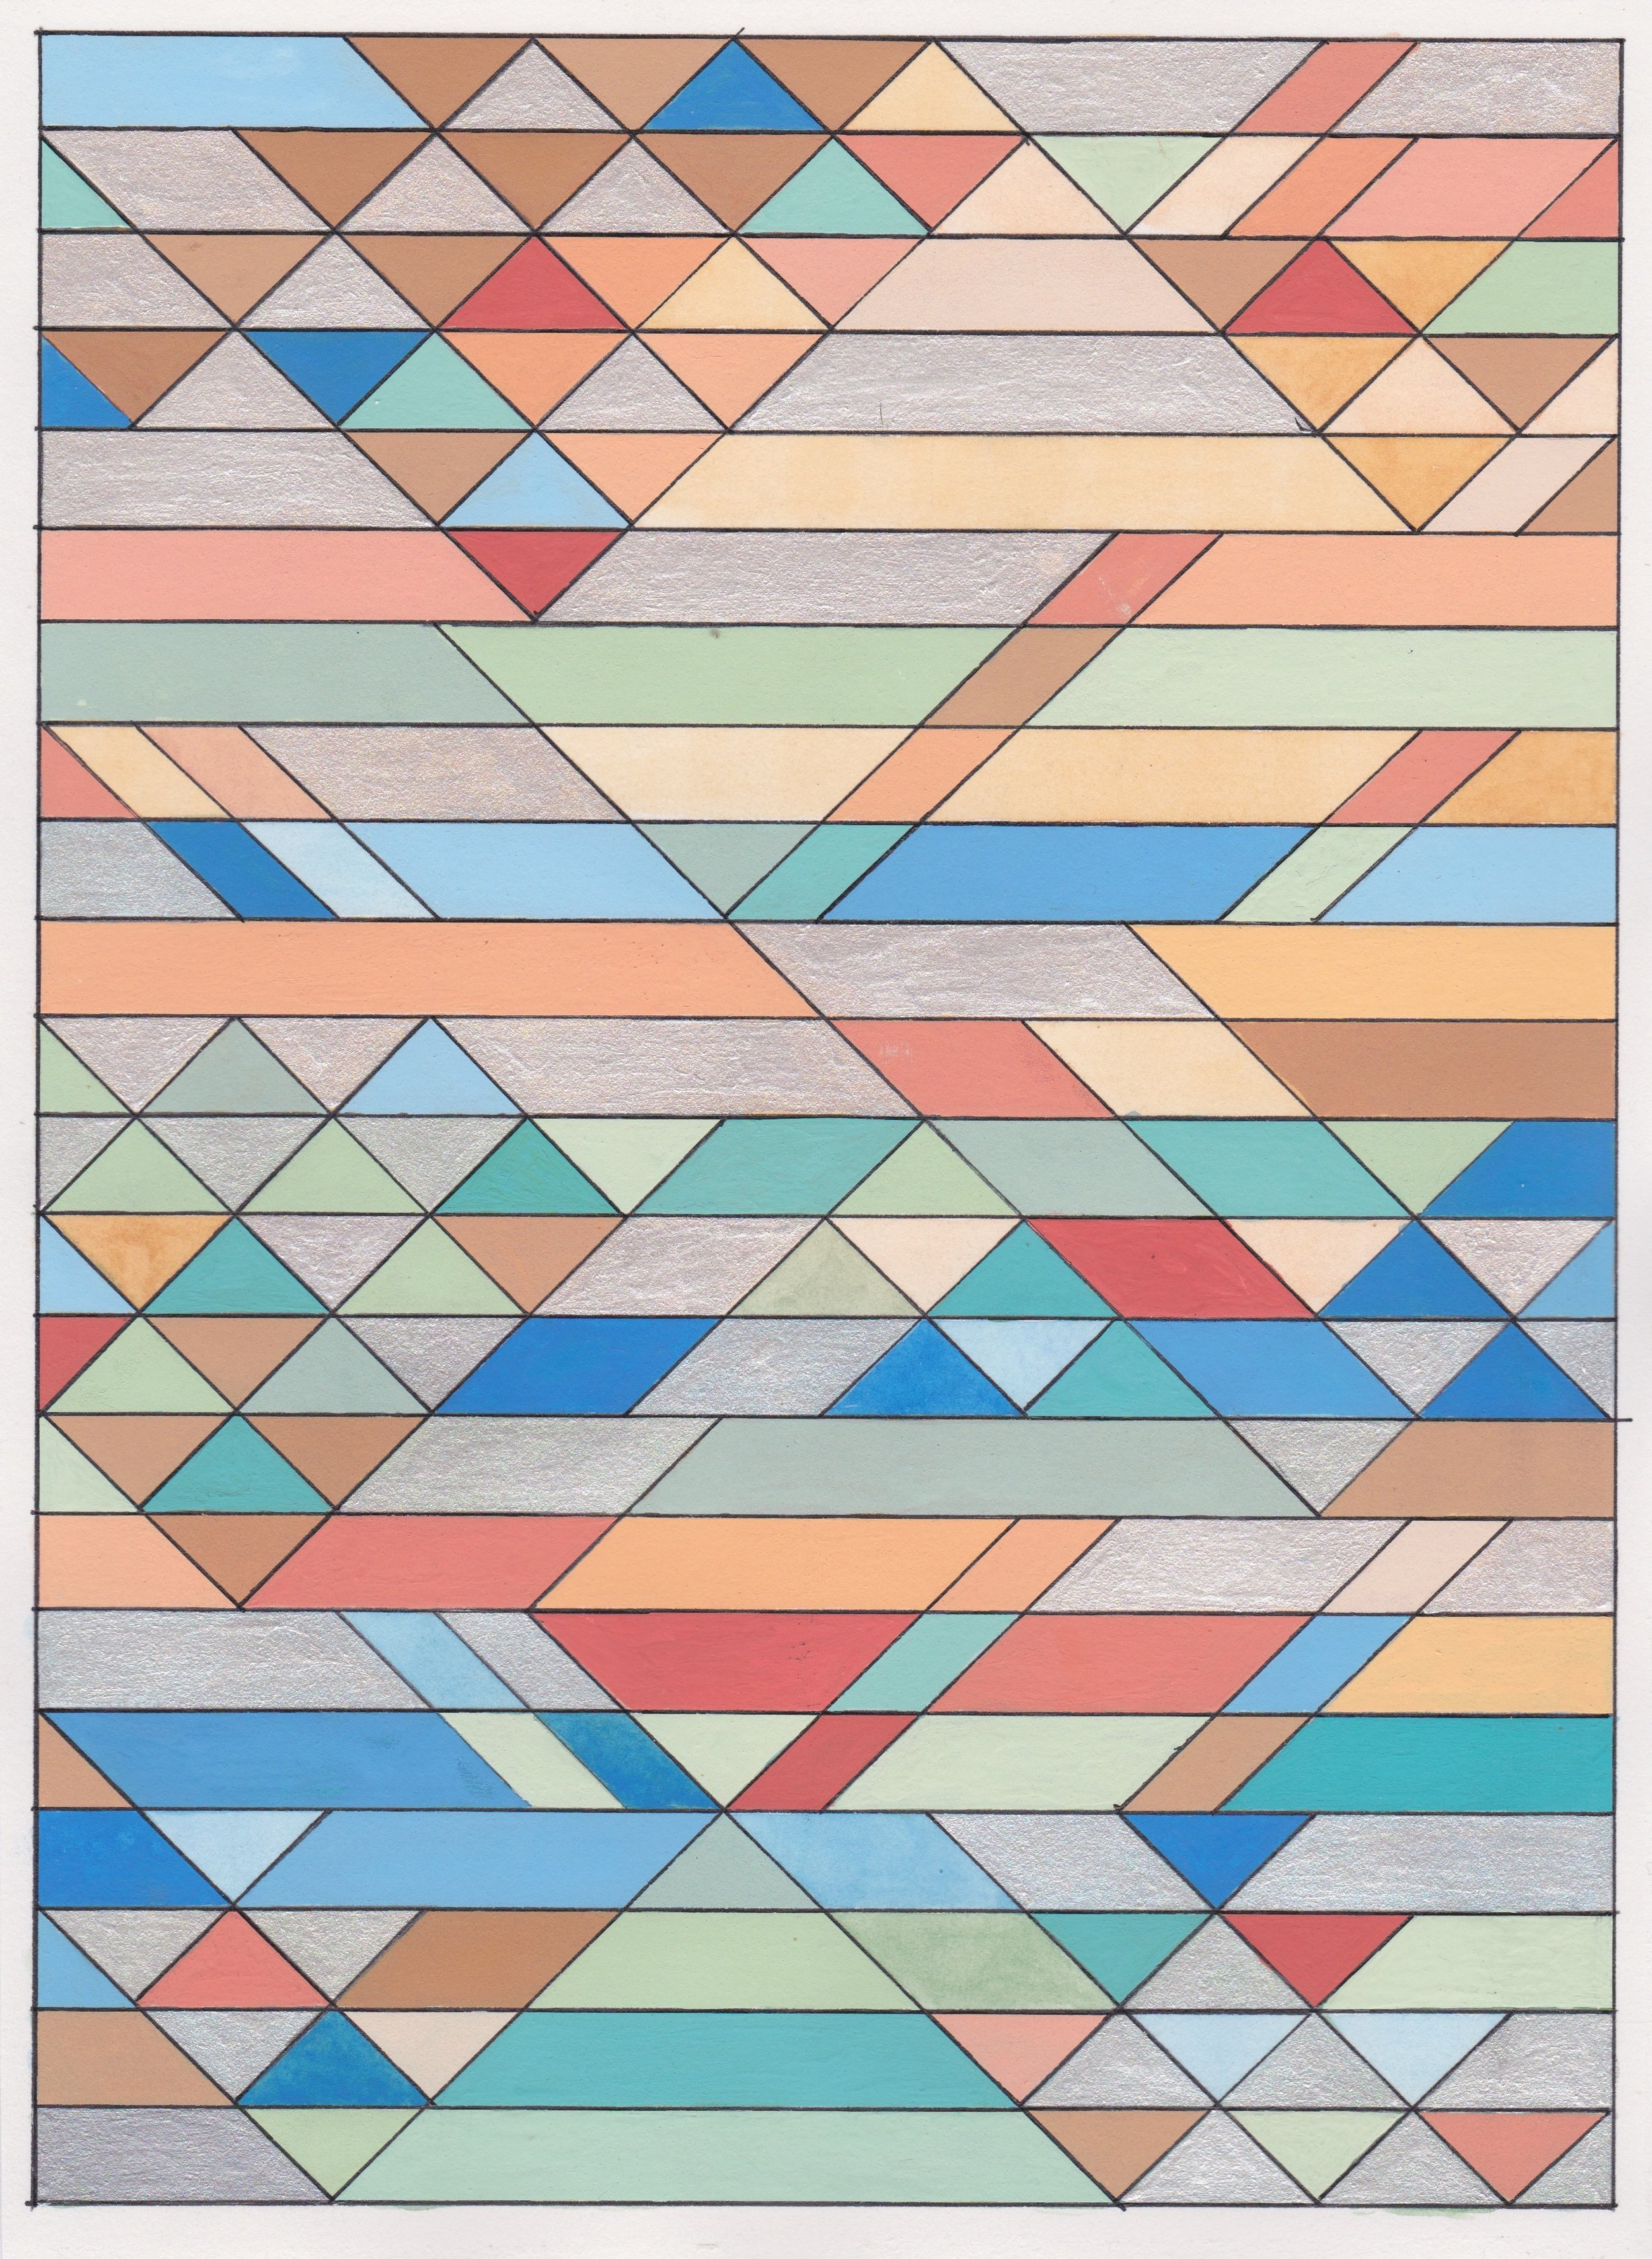 """Ephemeral Triangles no.2, 2016. Gouache, Watercolor + Ink on Paper. 11.5""""x8.5"""""""